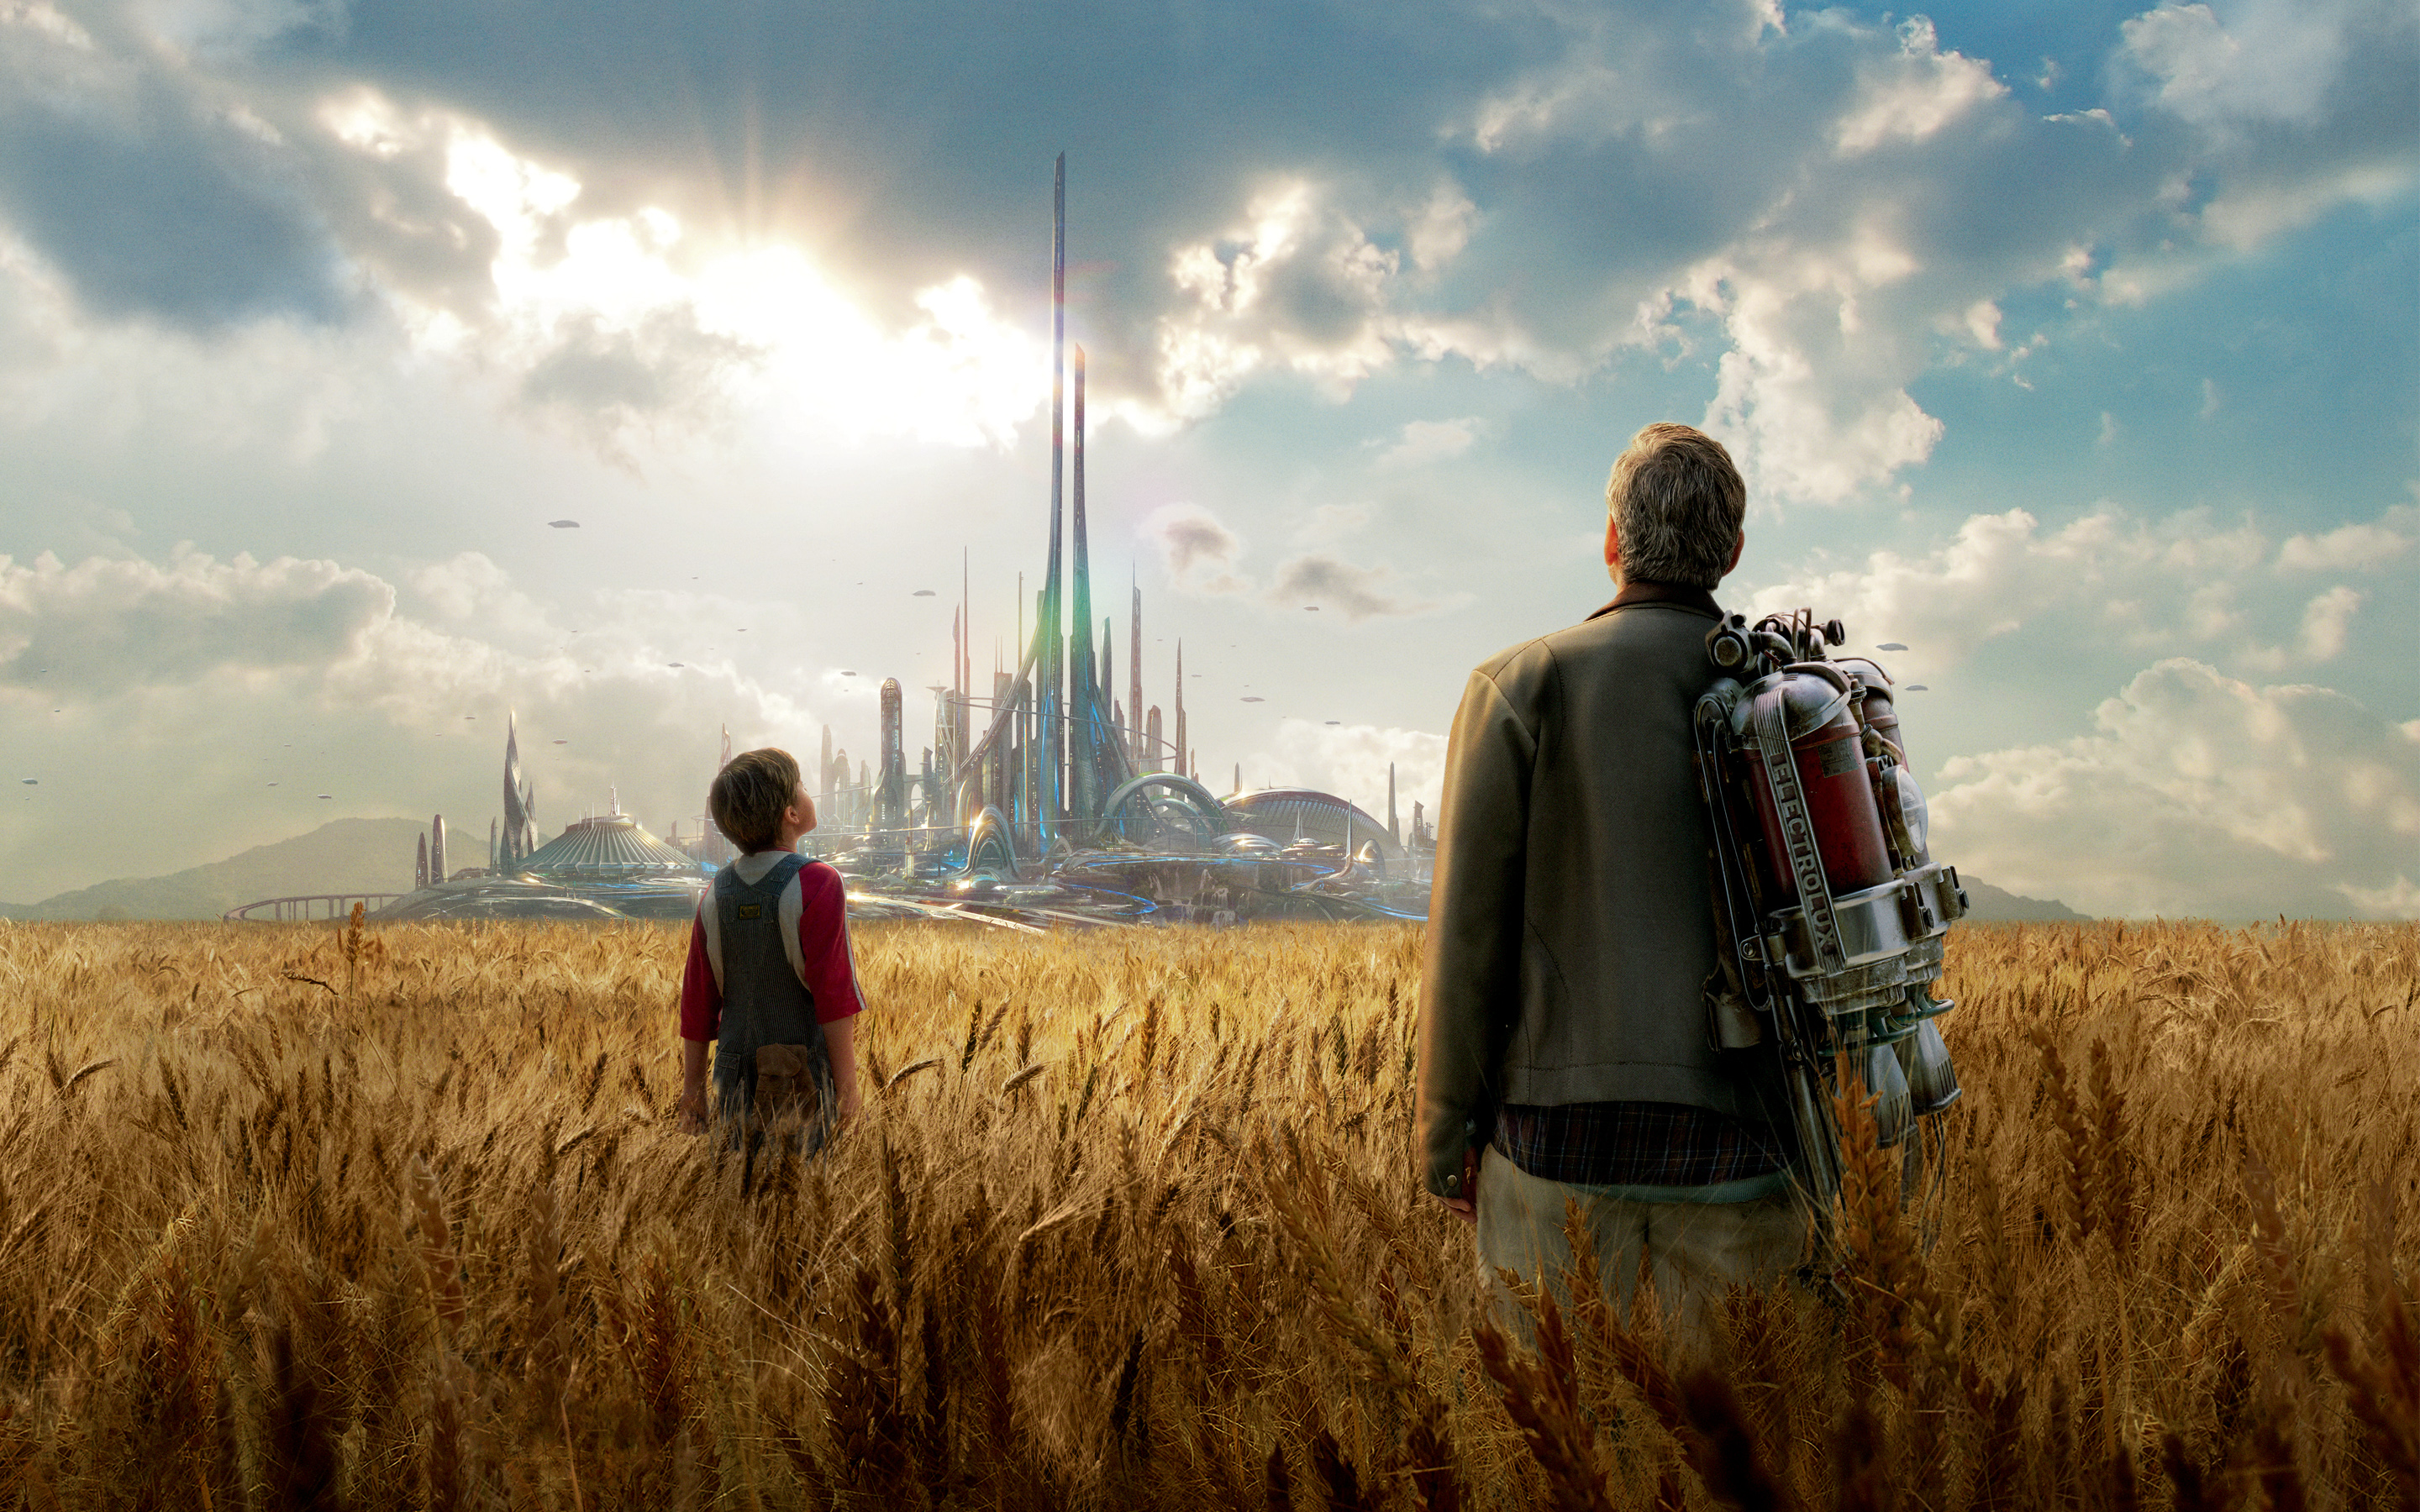 New tomorrowland movie hd desktop wallpapers 2015 all hd for Images of the best